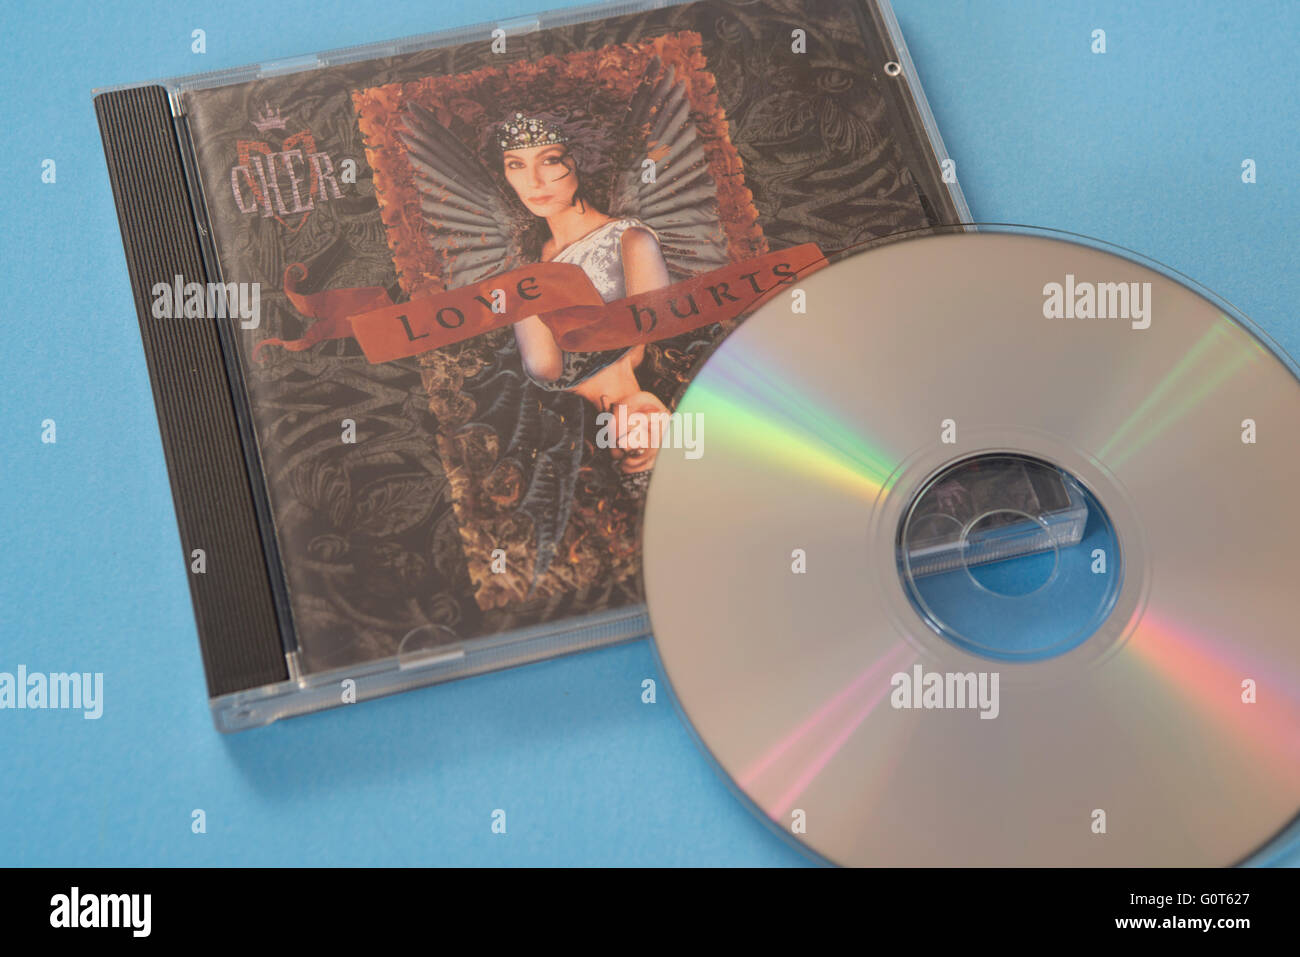 Love Hurts album by Cher on compact disc - Stock Image